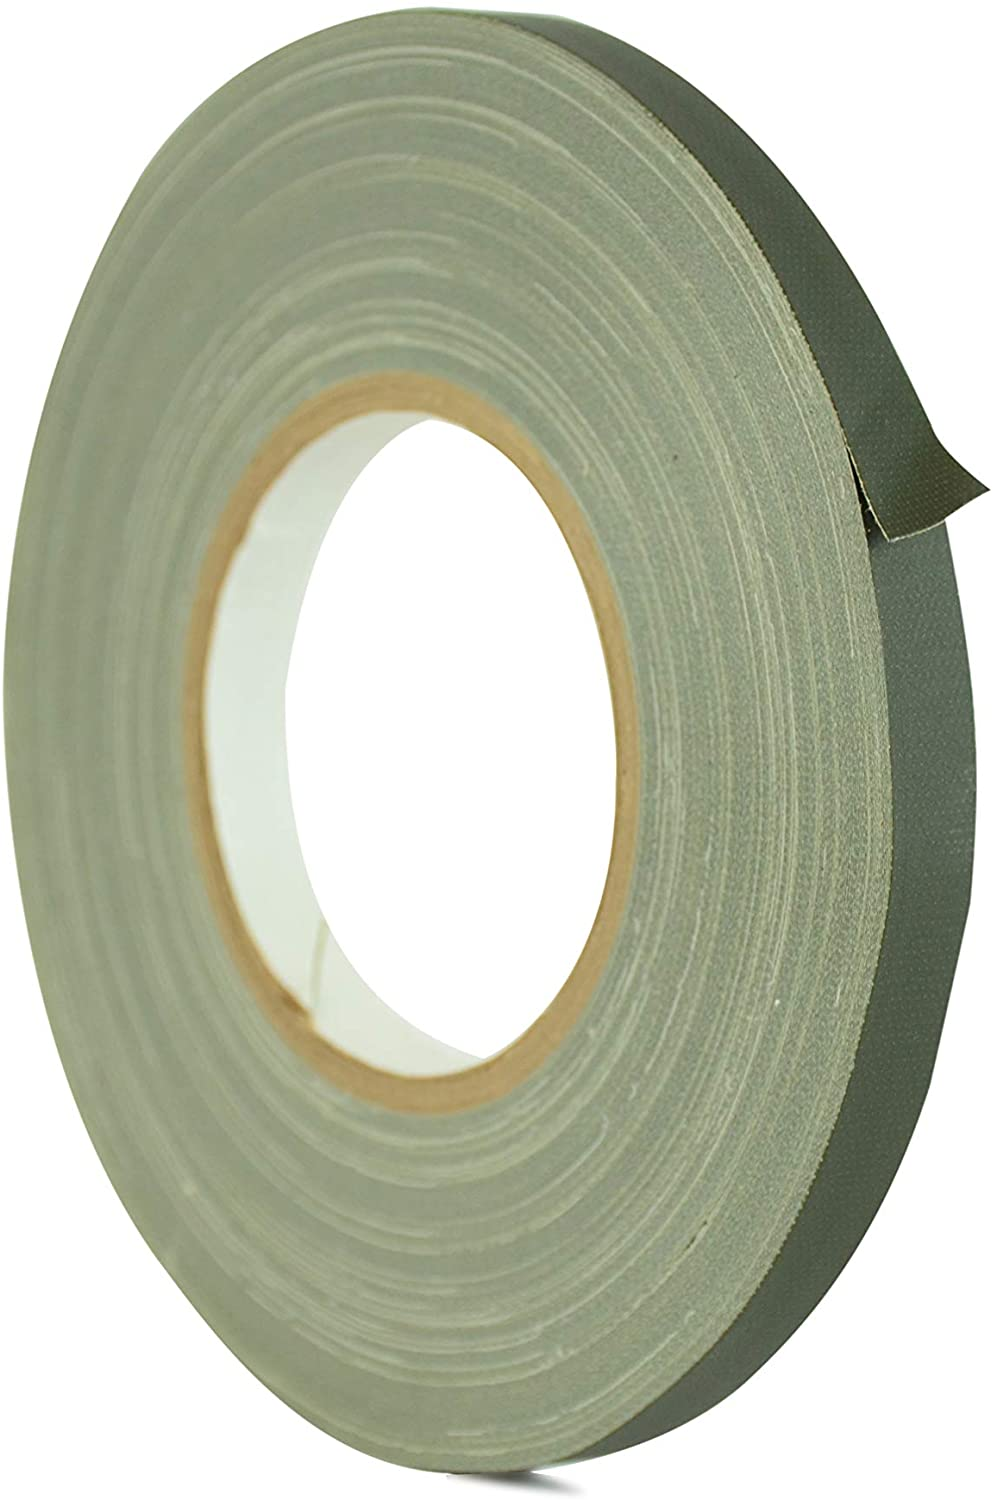 WOD GTC12 Gaffer Tape, Olive Drab Low Gloss Finish Film, 3/4 inch x 60 yds. Residue Free, Non Reflective Cloth Fabric, Secure Cords, Water Resistant, Photography, Filming Backdrop, Production